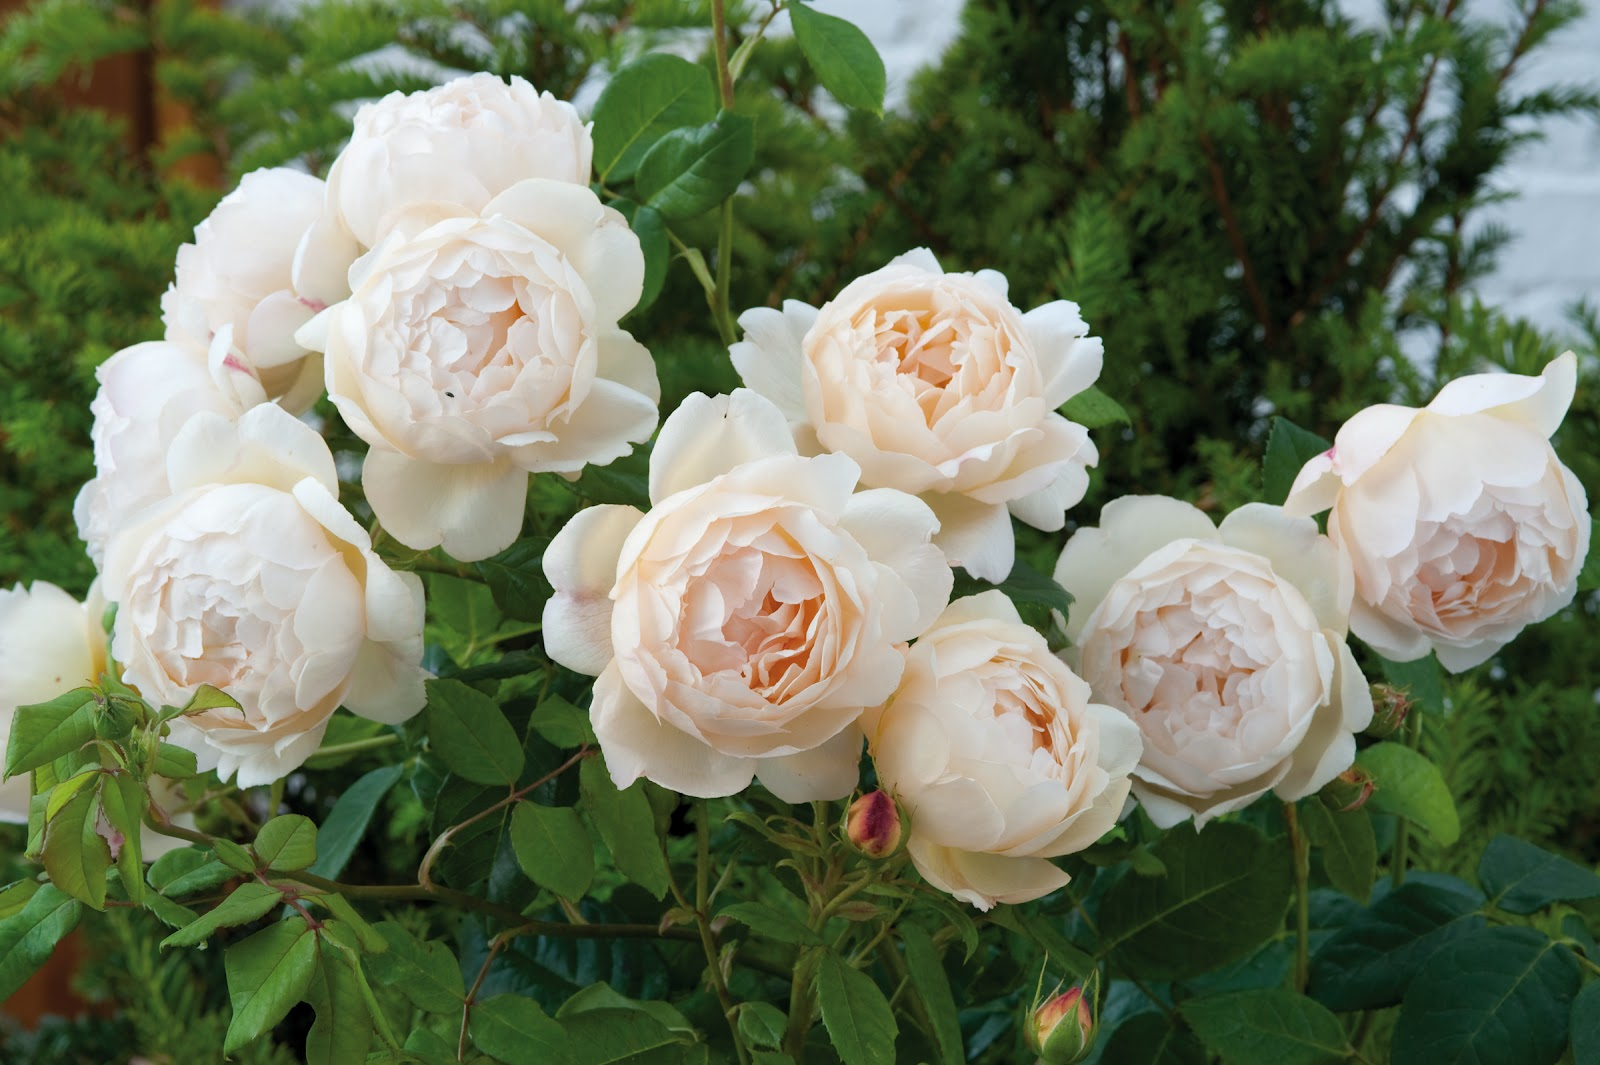 Rose Lovers 13 May Be Be Your Lucky Number The Dirt